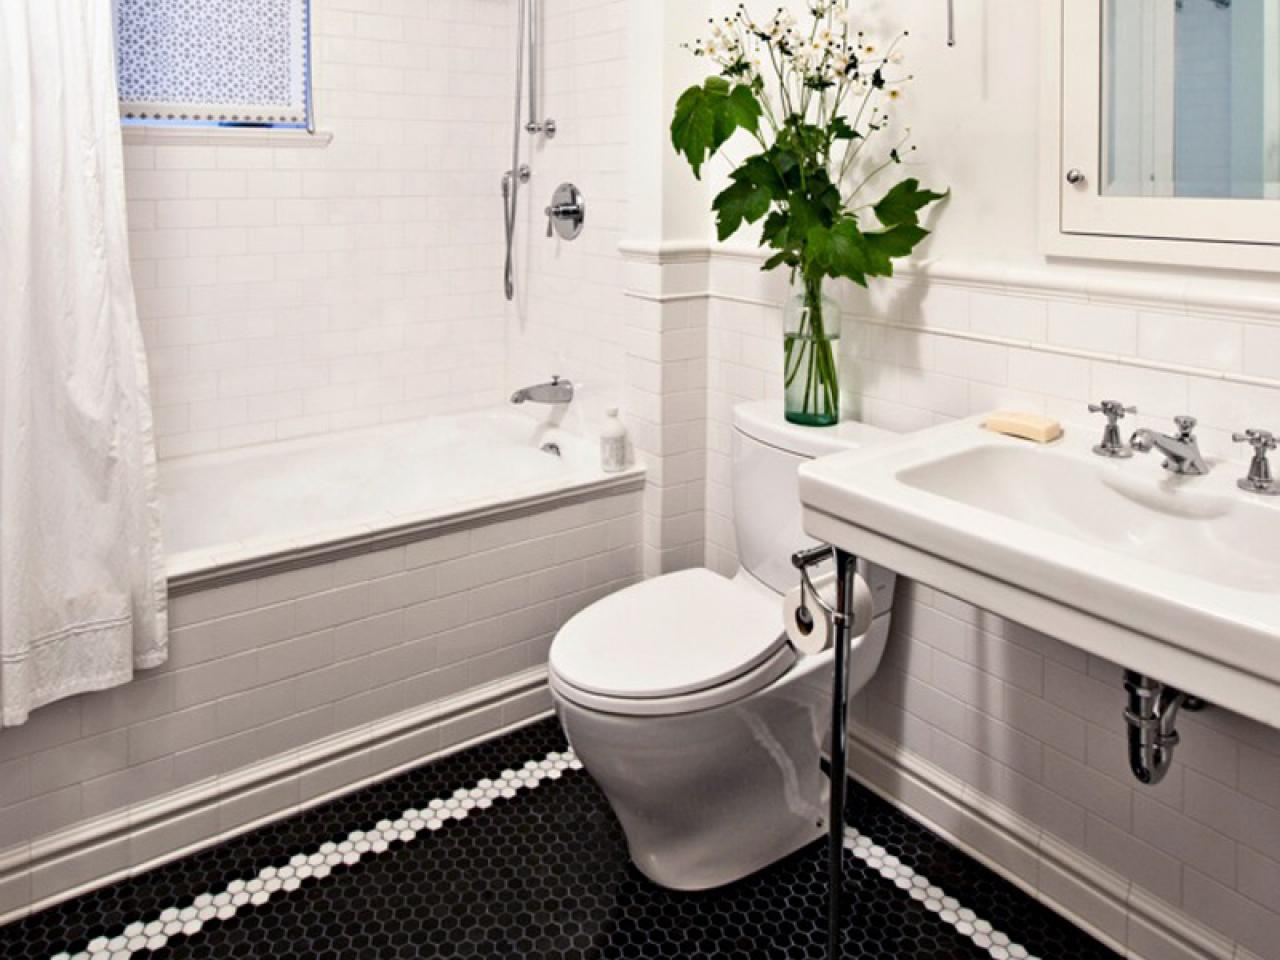 9 bold bathroom tile designs | hgtv's decorating & design blog | hgtv